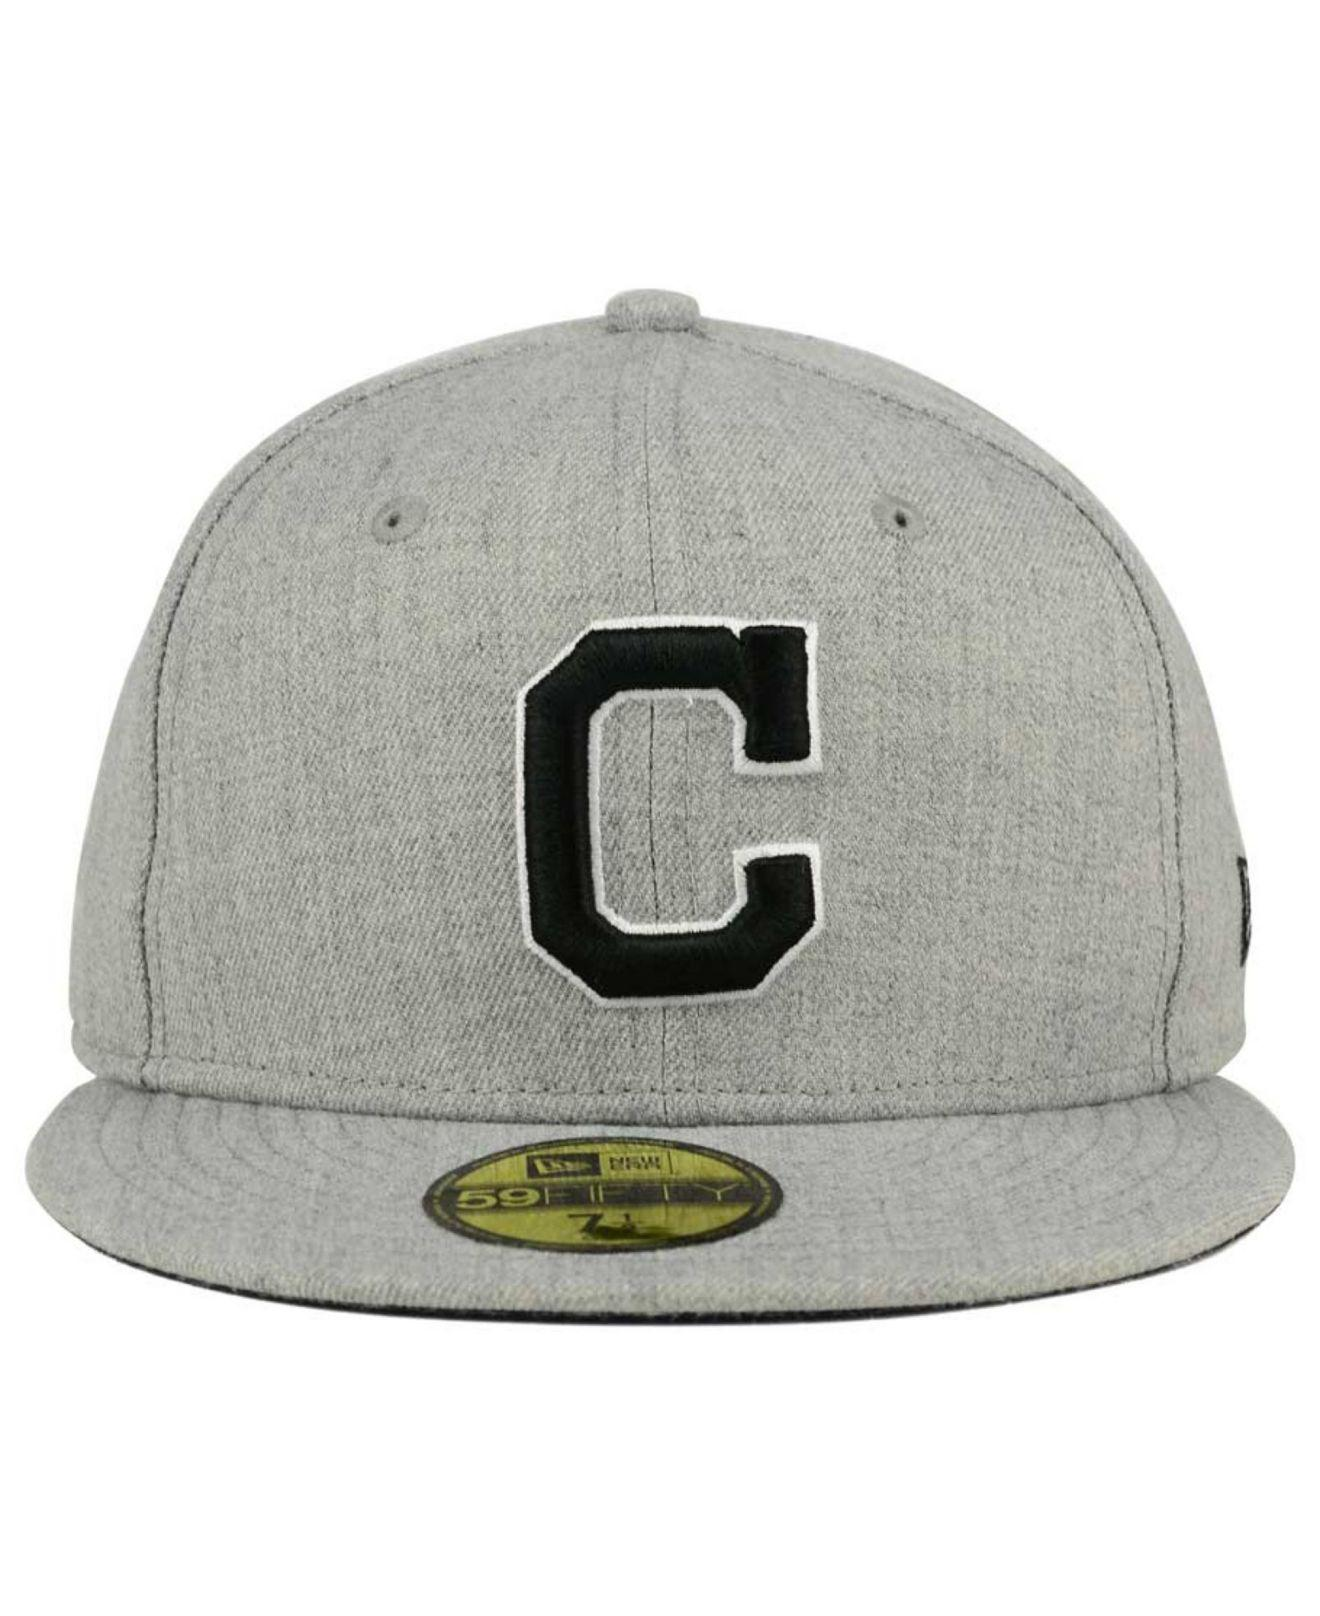 store new era boys cleveland indians batting practice prolight 59fifty  fitted cap 09144 8b142  order lyst ktz cleveland indians heather black  white 59fifty ... eb2ba2408d61